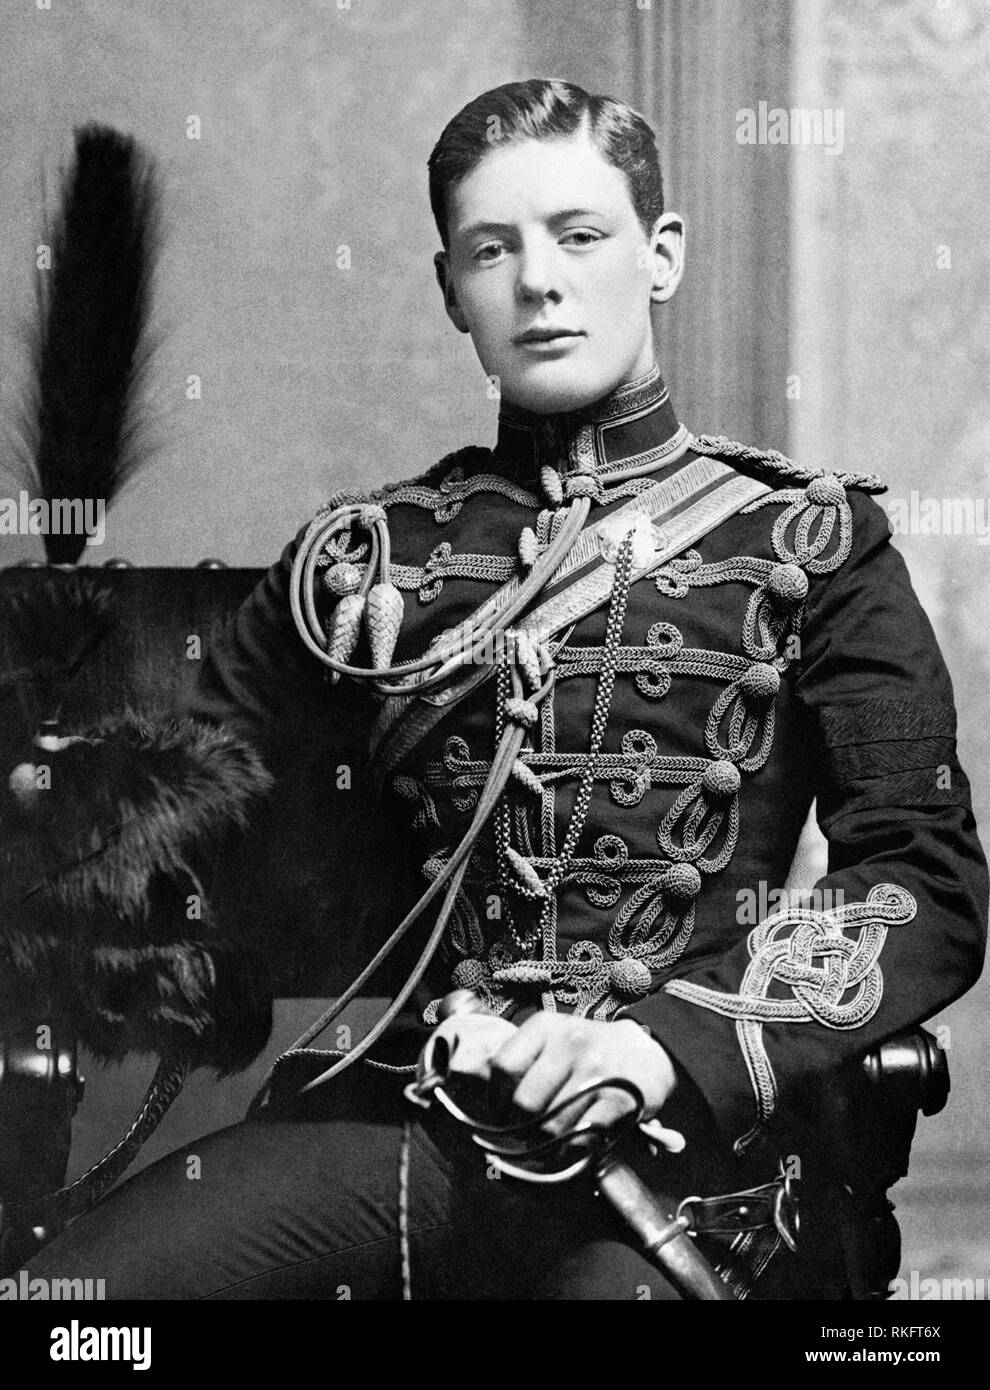 Portrait of 2nd Lieutenant Winston Churchill of the 4th Queen's Own Hussars in 1895 as a young man - Stock Image